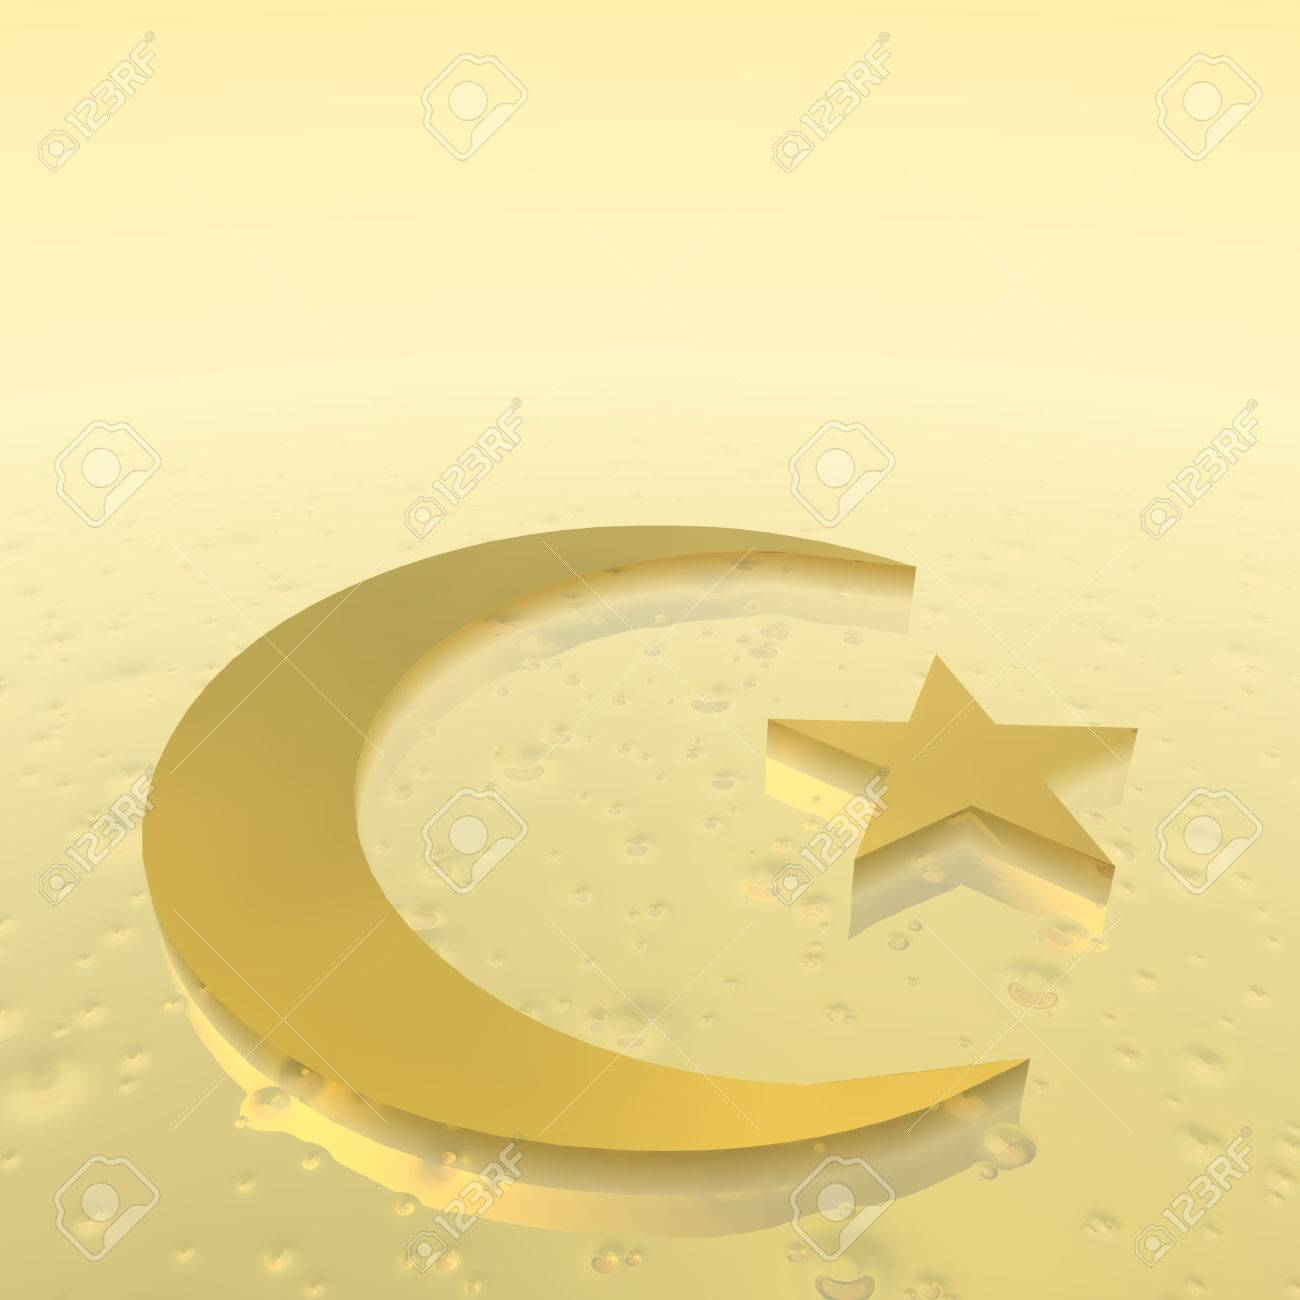 Crescent And Star As Symbol Of Islam Religion In Golden Ground Stock